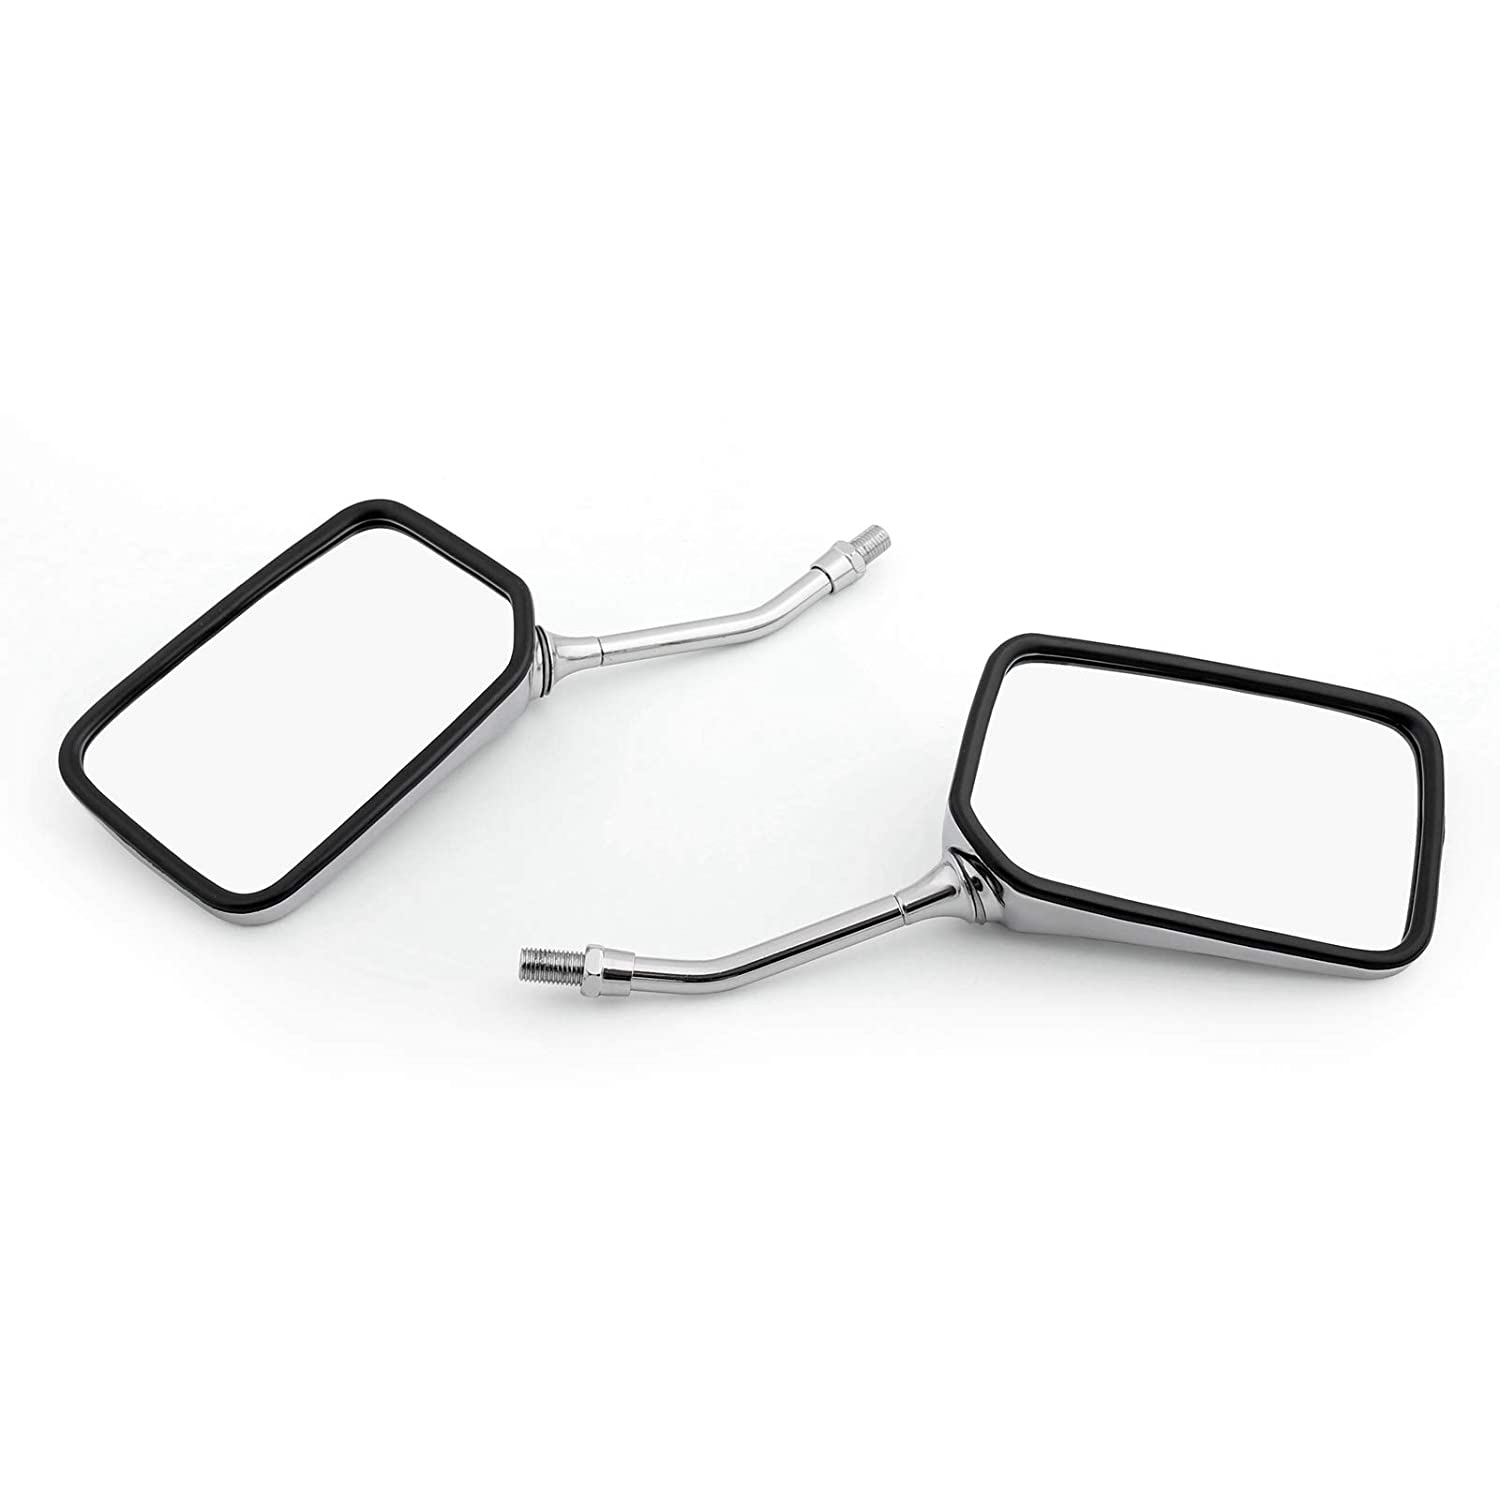 Topteng Pair Motorcycle Rearview Mirror for Hon-da CA125 CMX250 Rebel CM125 VT125 Shadow